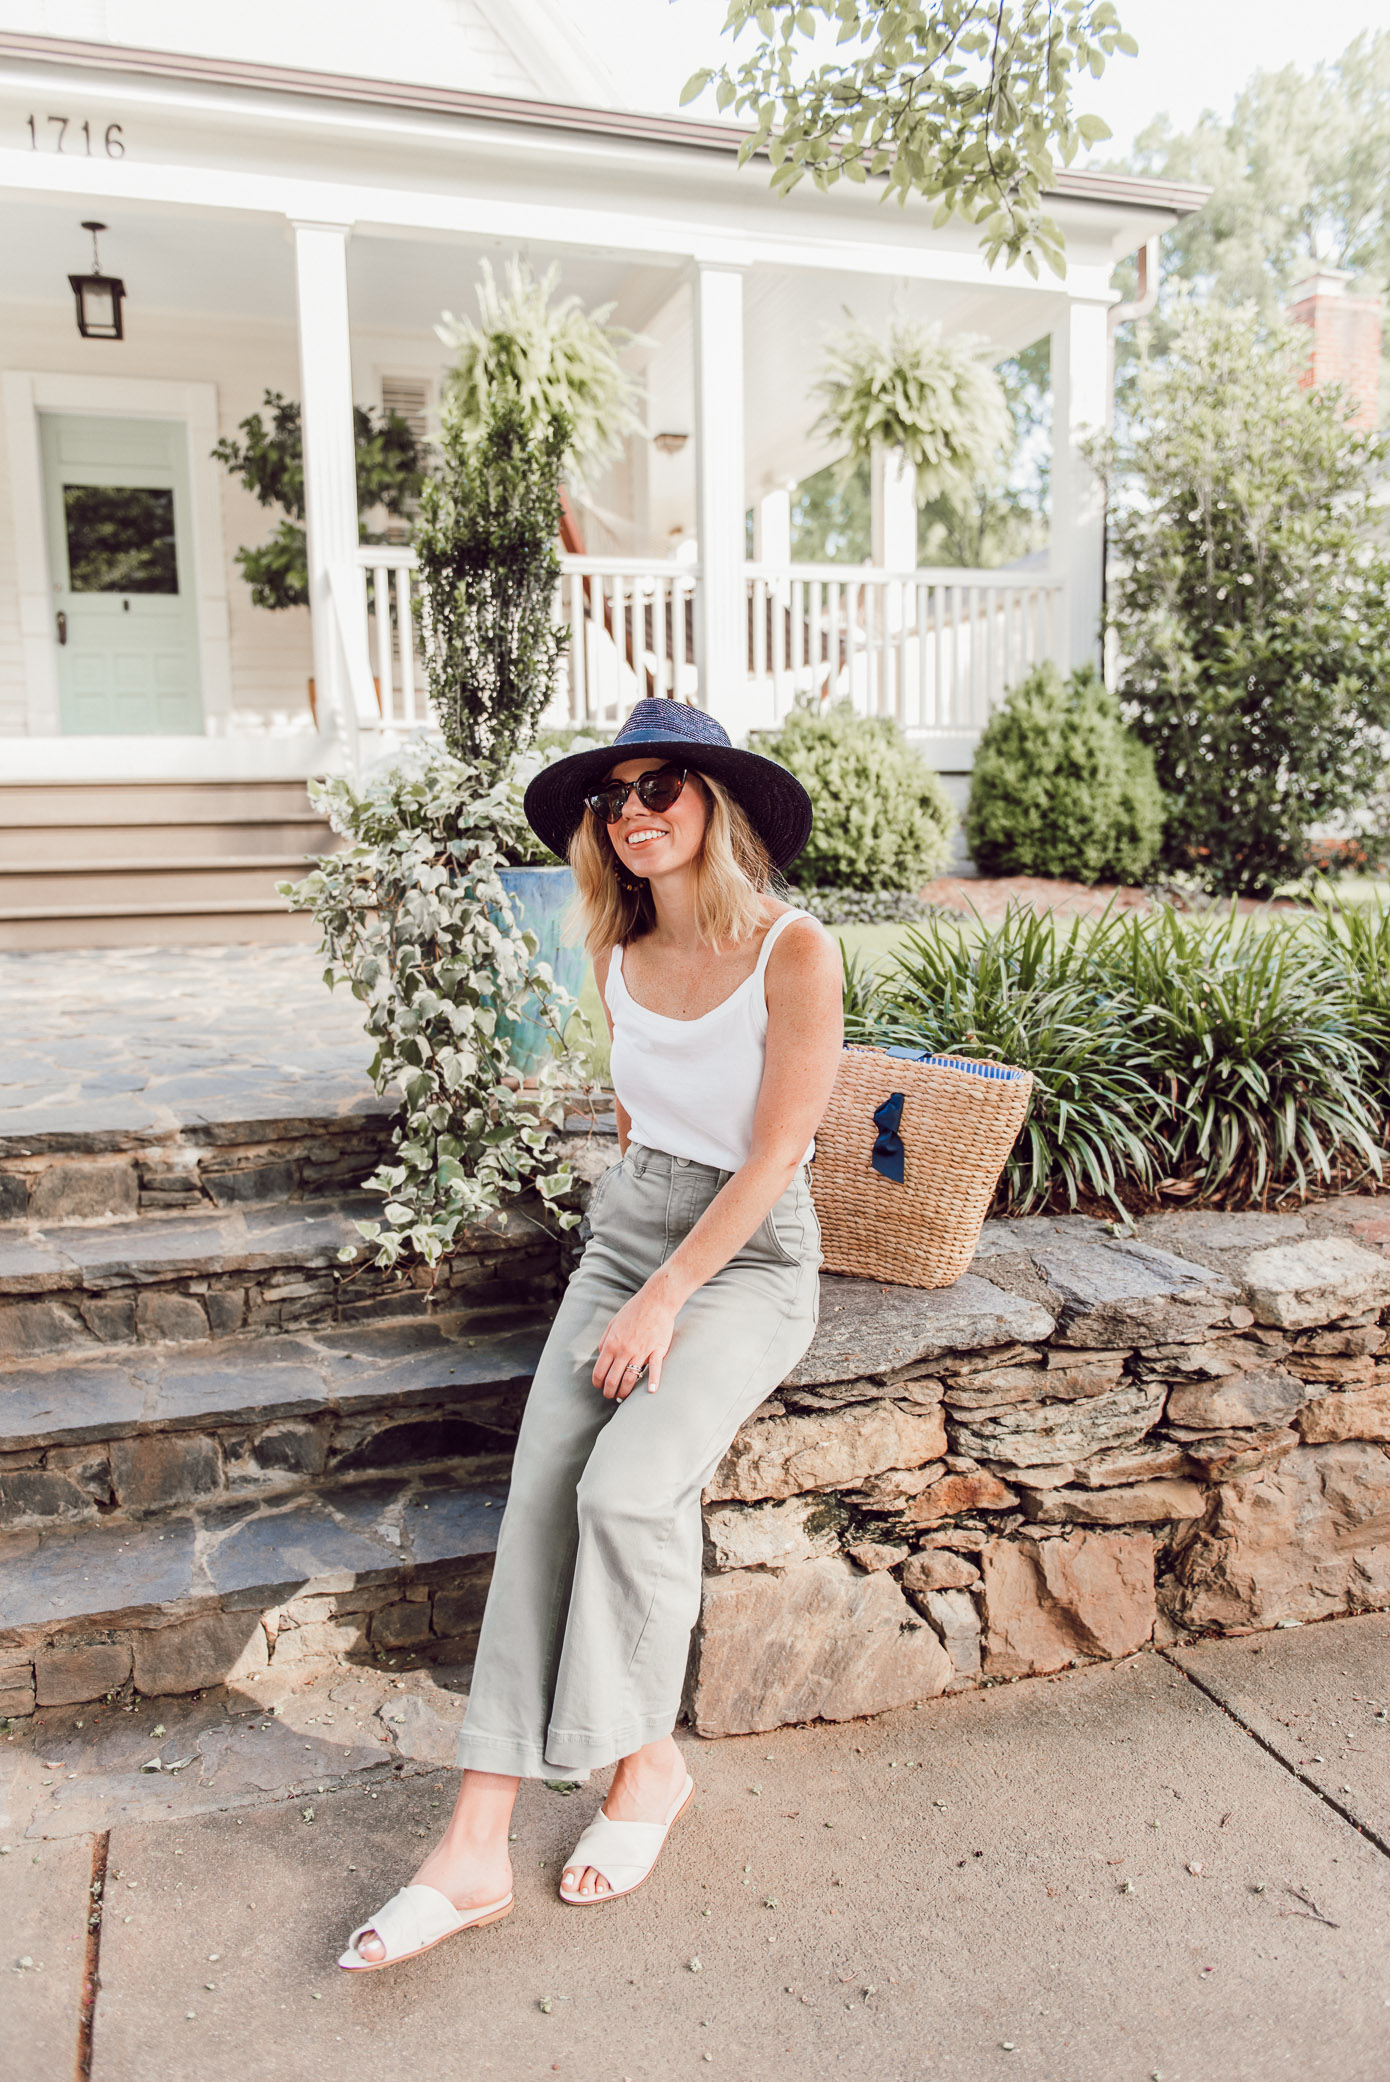 Affordable Summer Basics | Cotton Cami, Wide Leg Crop Pants | Ft. Everlane, Joules, Brixton | Louella Reese